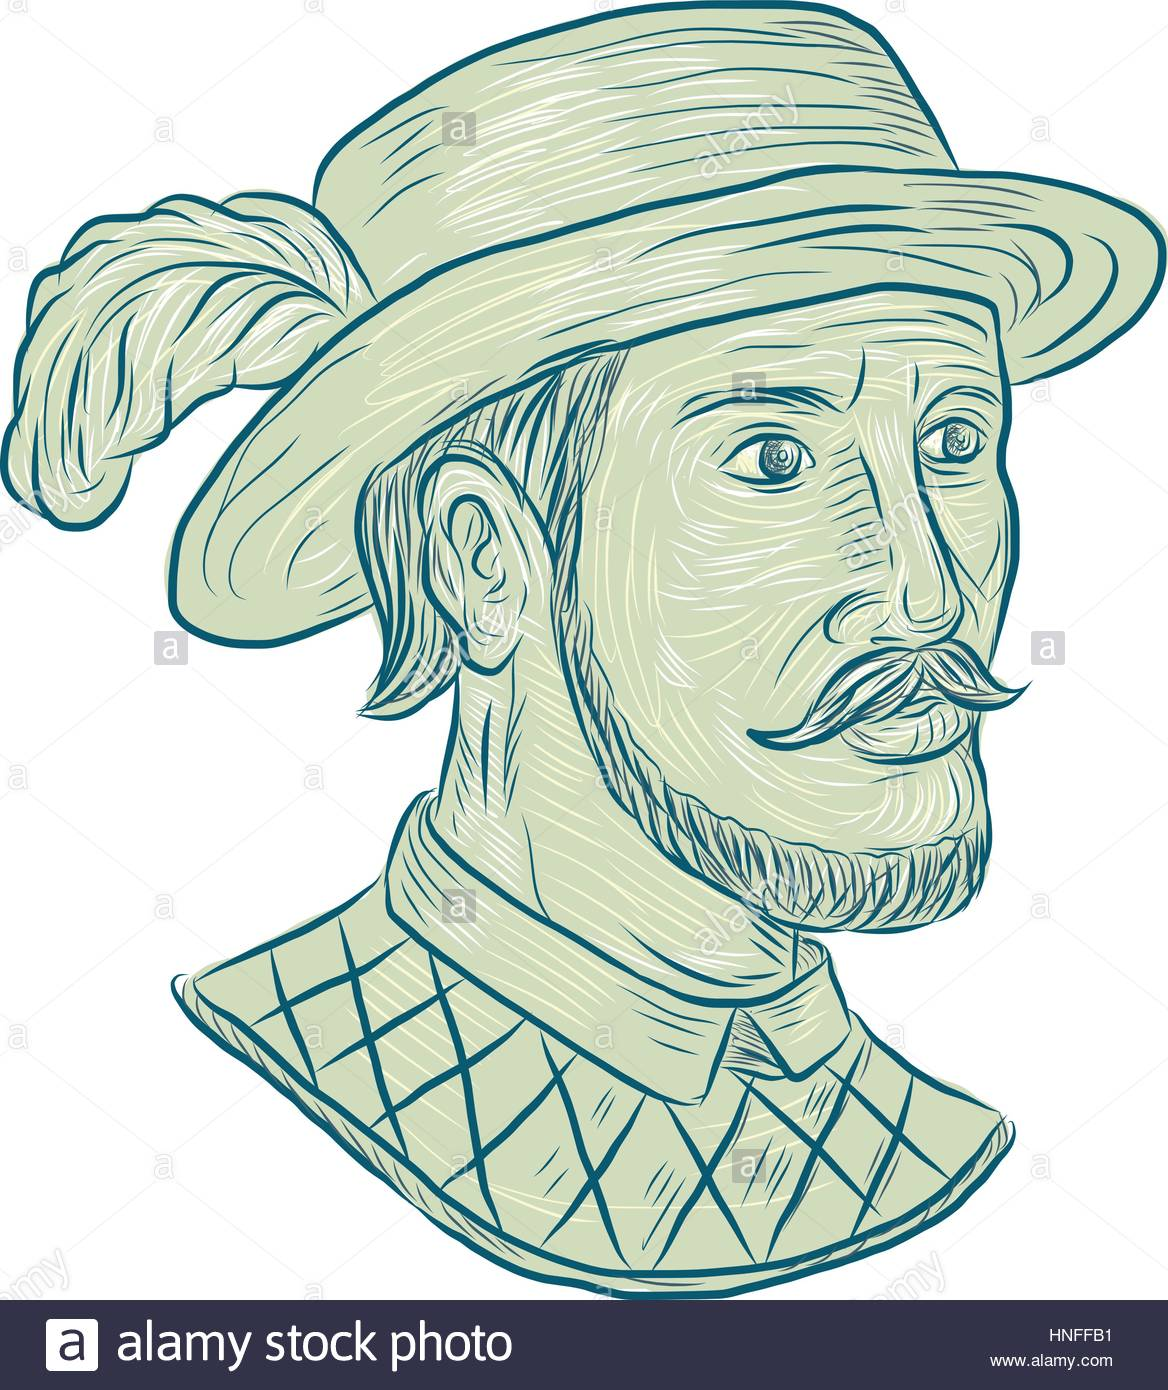 1168x1390 Drawing Sketch Style Illustration Of Juan Ponce De Leon, A Spanish